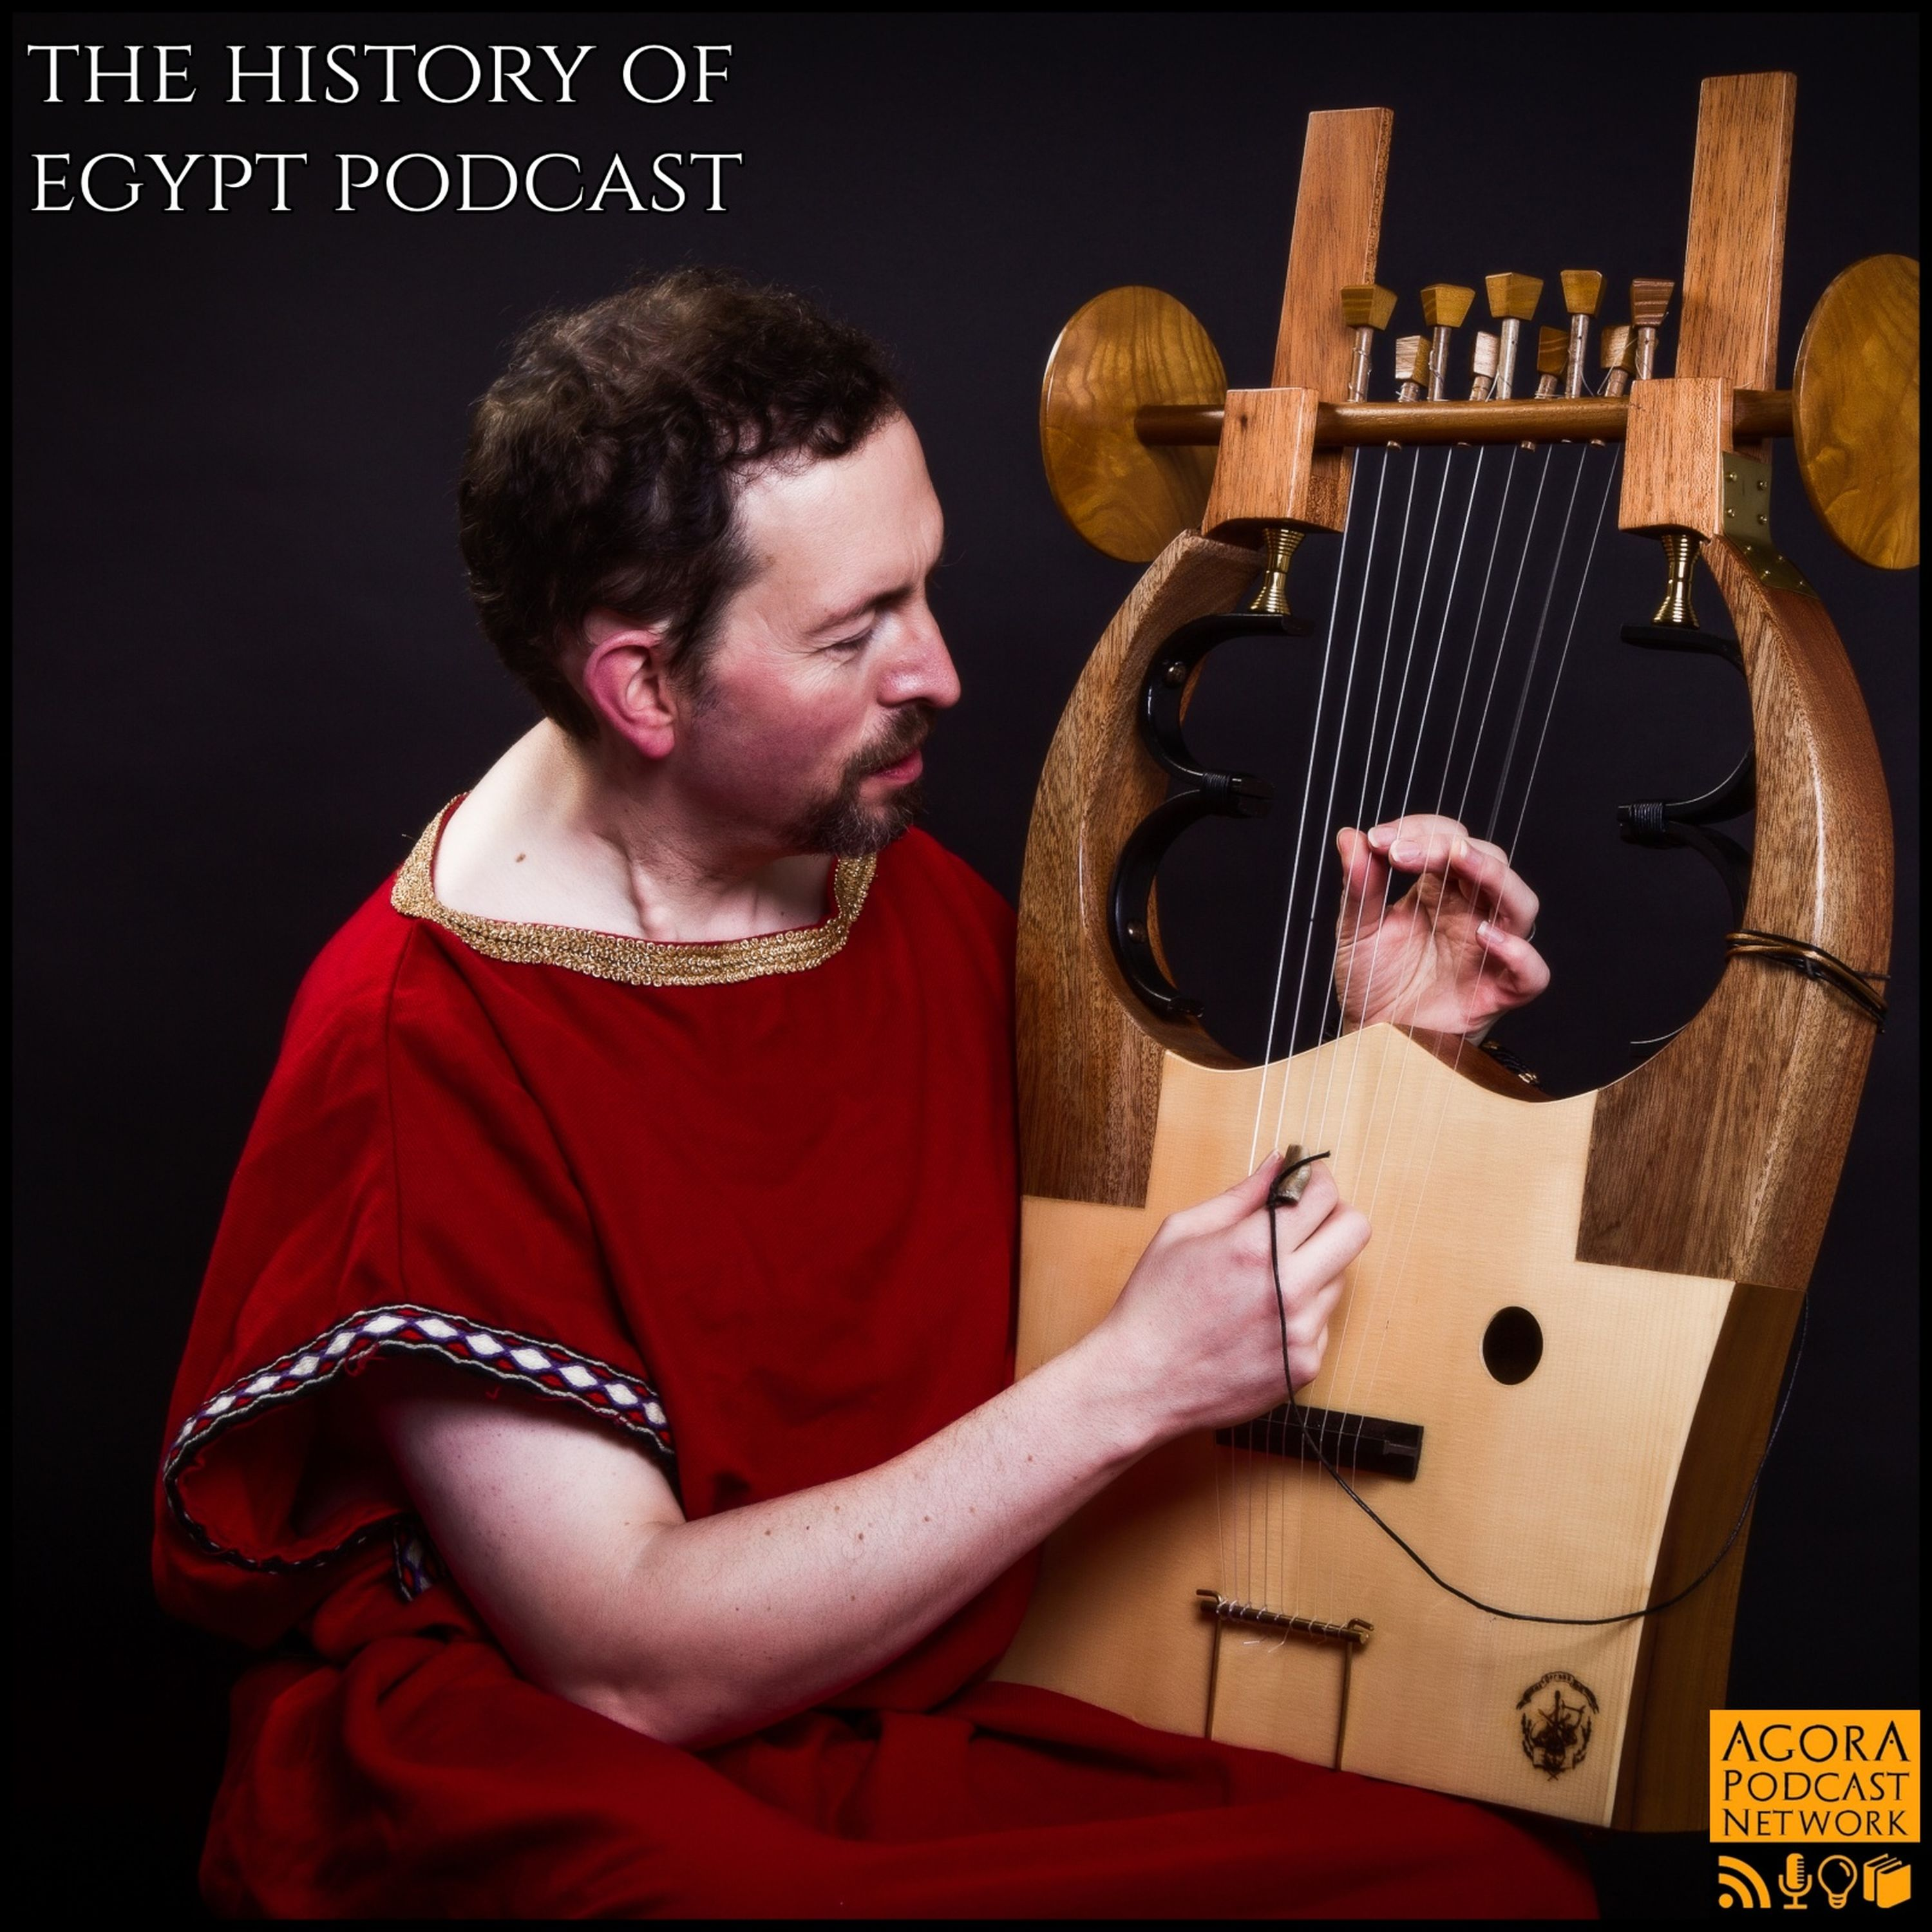 Interview: An Ancient Lyre, with Michael Levy